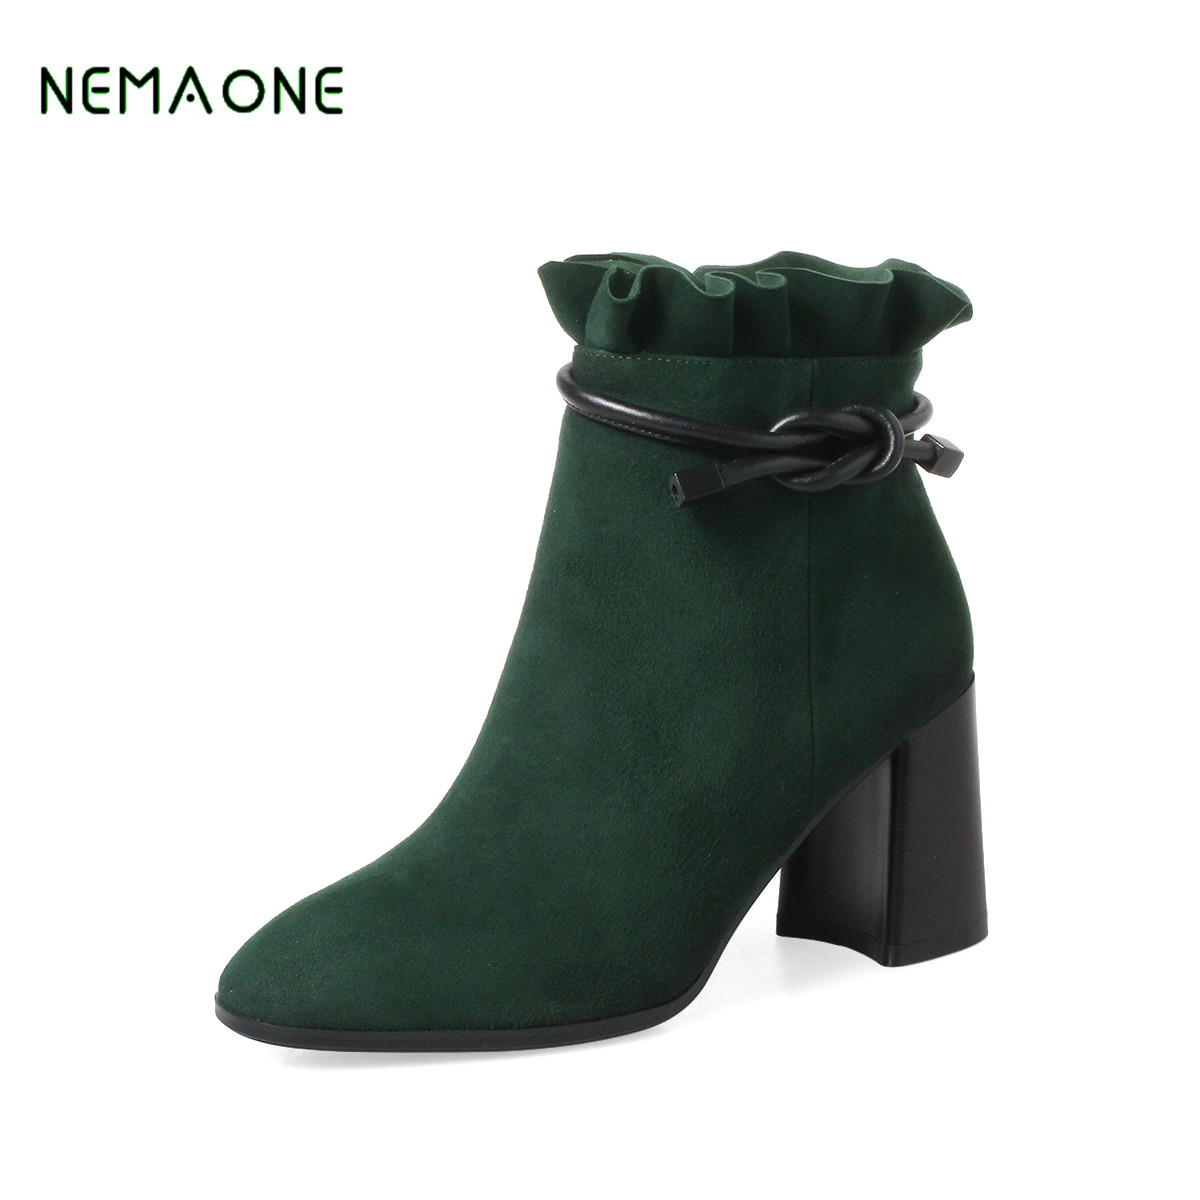 NEMAONE Women Ankle Boots Winter Genuine Nubuck Leather Black Thick Heel 12cm Super High Heels Platform Round toe Shoes 5010s dc 12v 0 1a brushless cooling fan 4 2cm diameter page 4